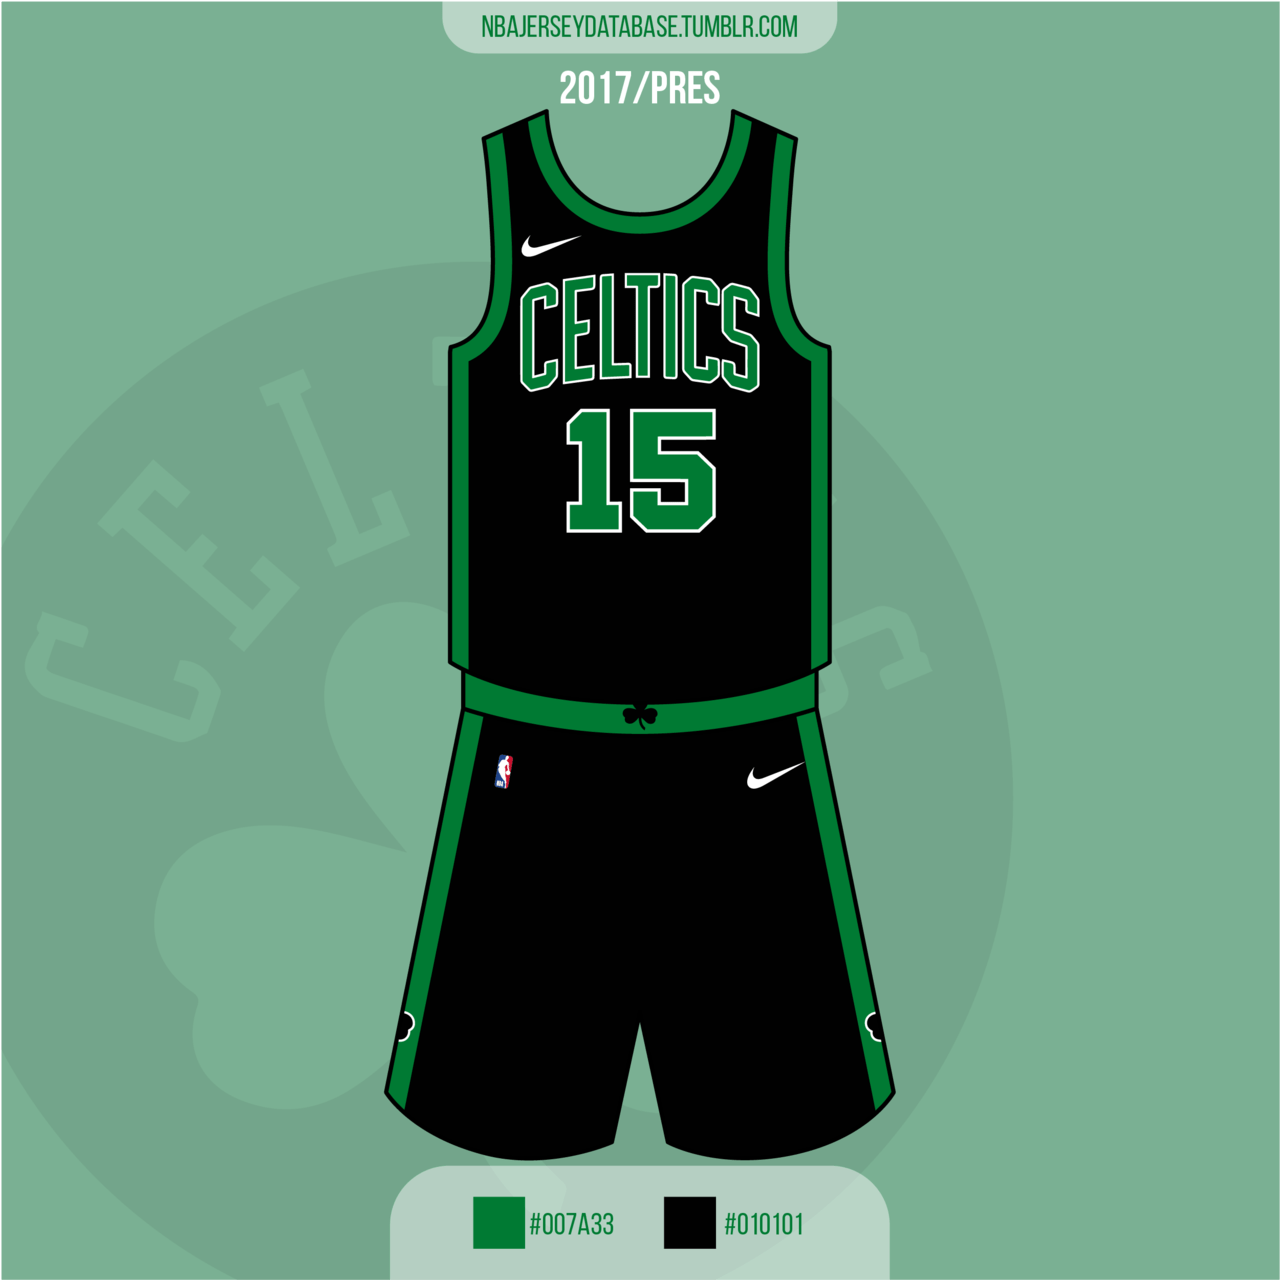 Boston Celtics Statement Jersey 2017-Present